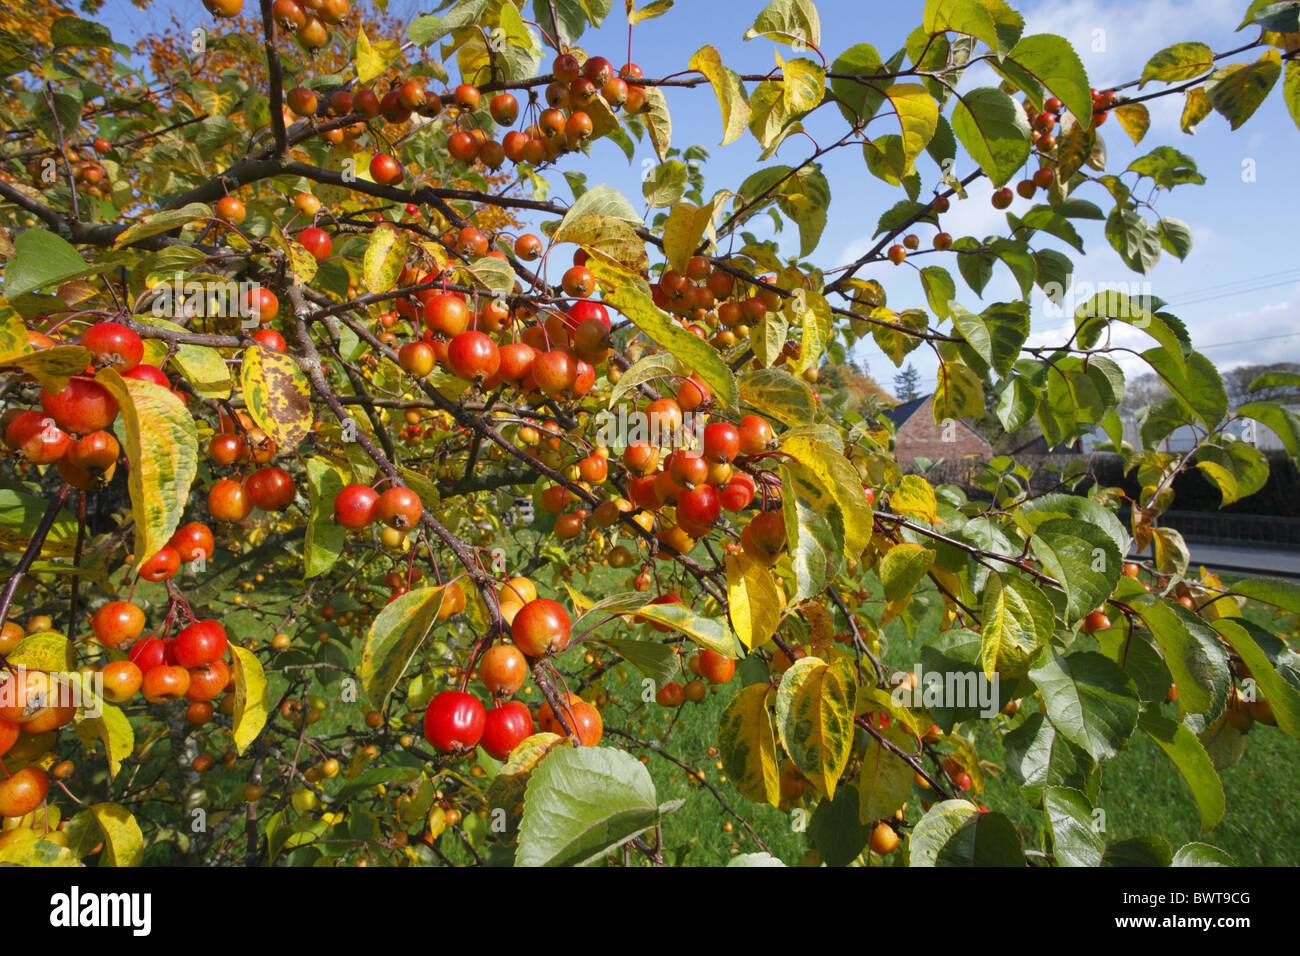 Cultivated Apple Malus Fruit Fruiting Tree Orchard Variety Varieties Stock Photo Royalty Free